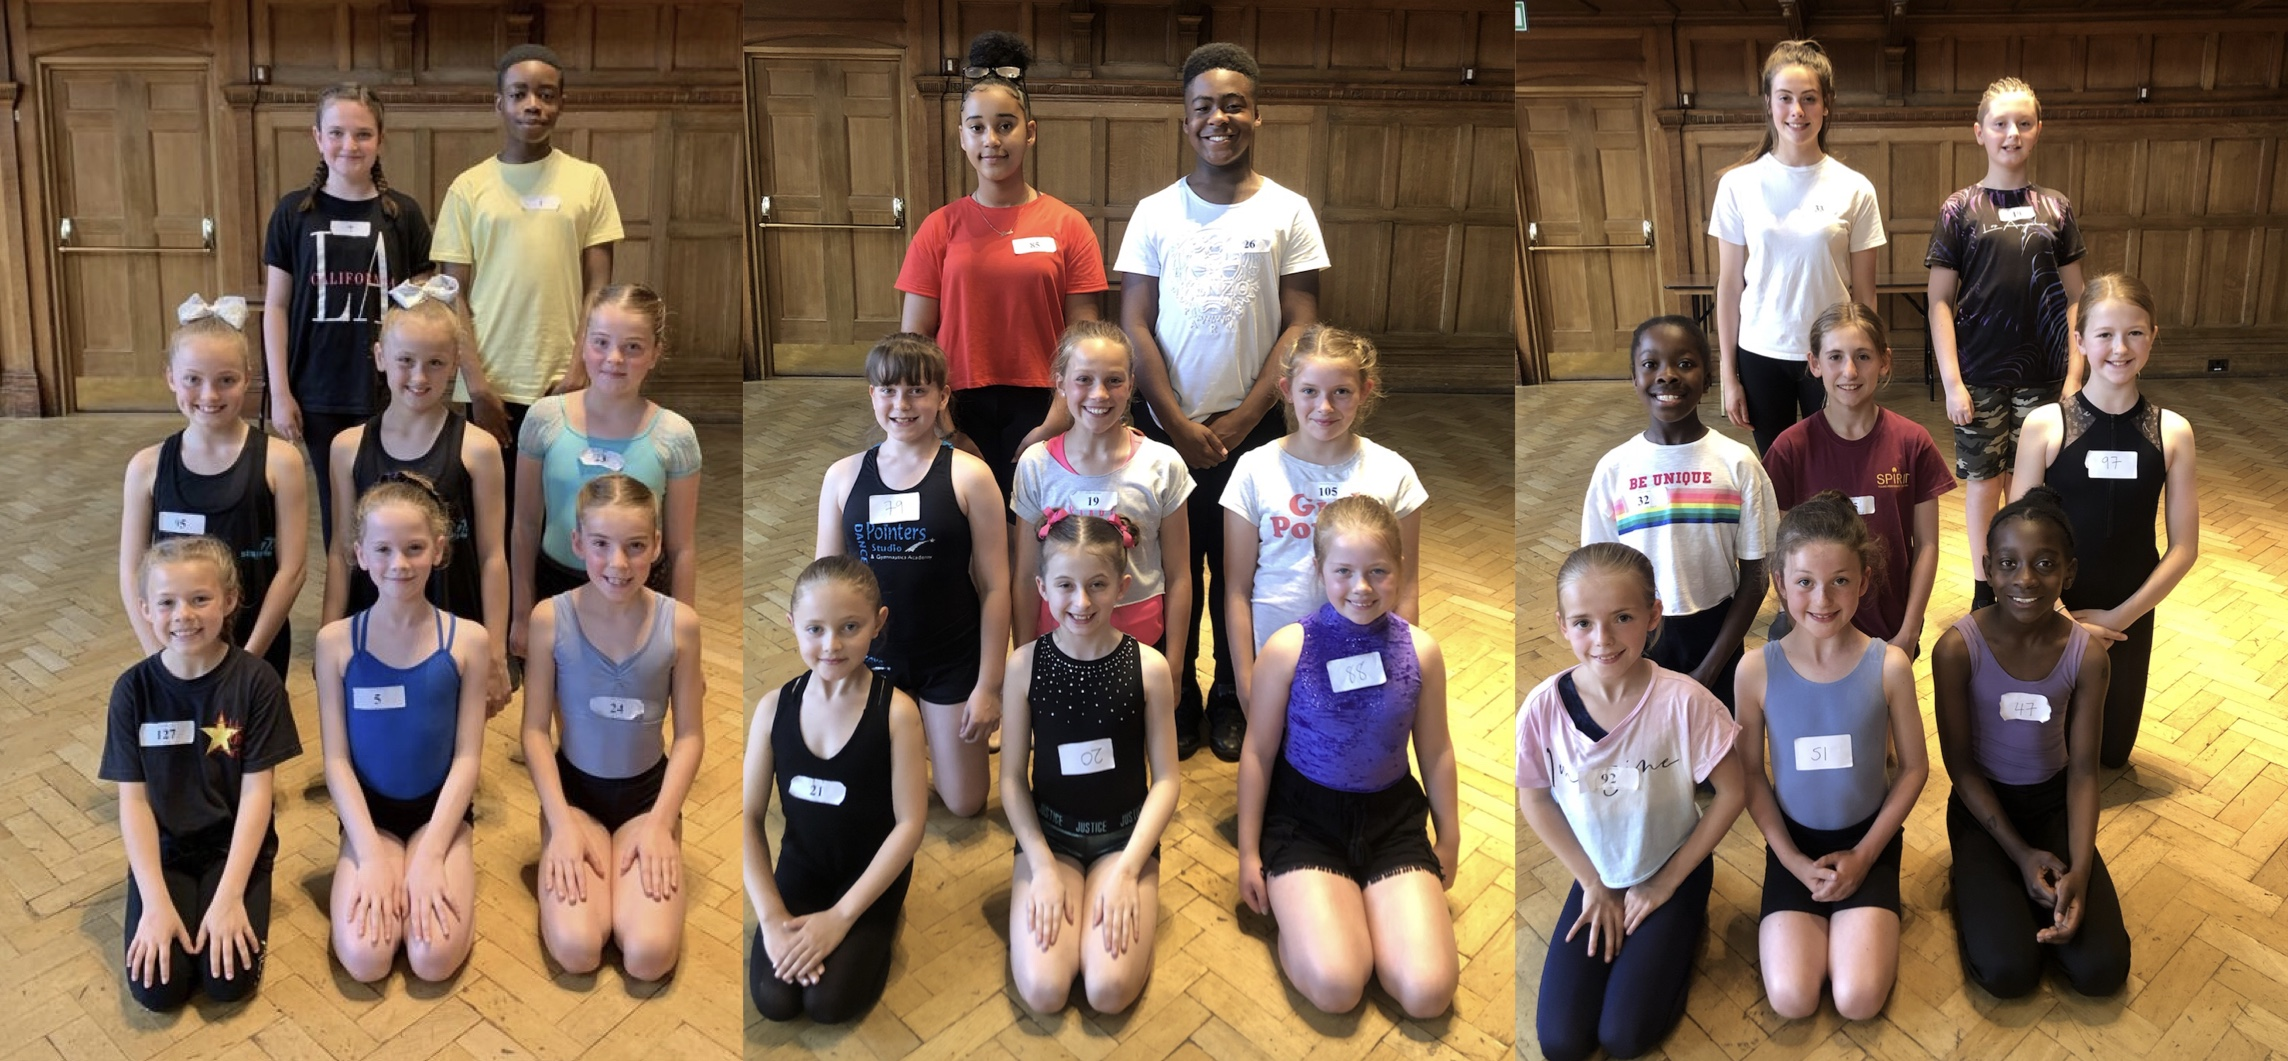 Introducing our three teams of children who will appear in Cinderella